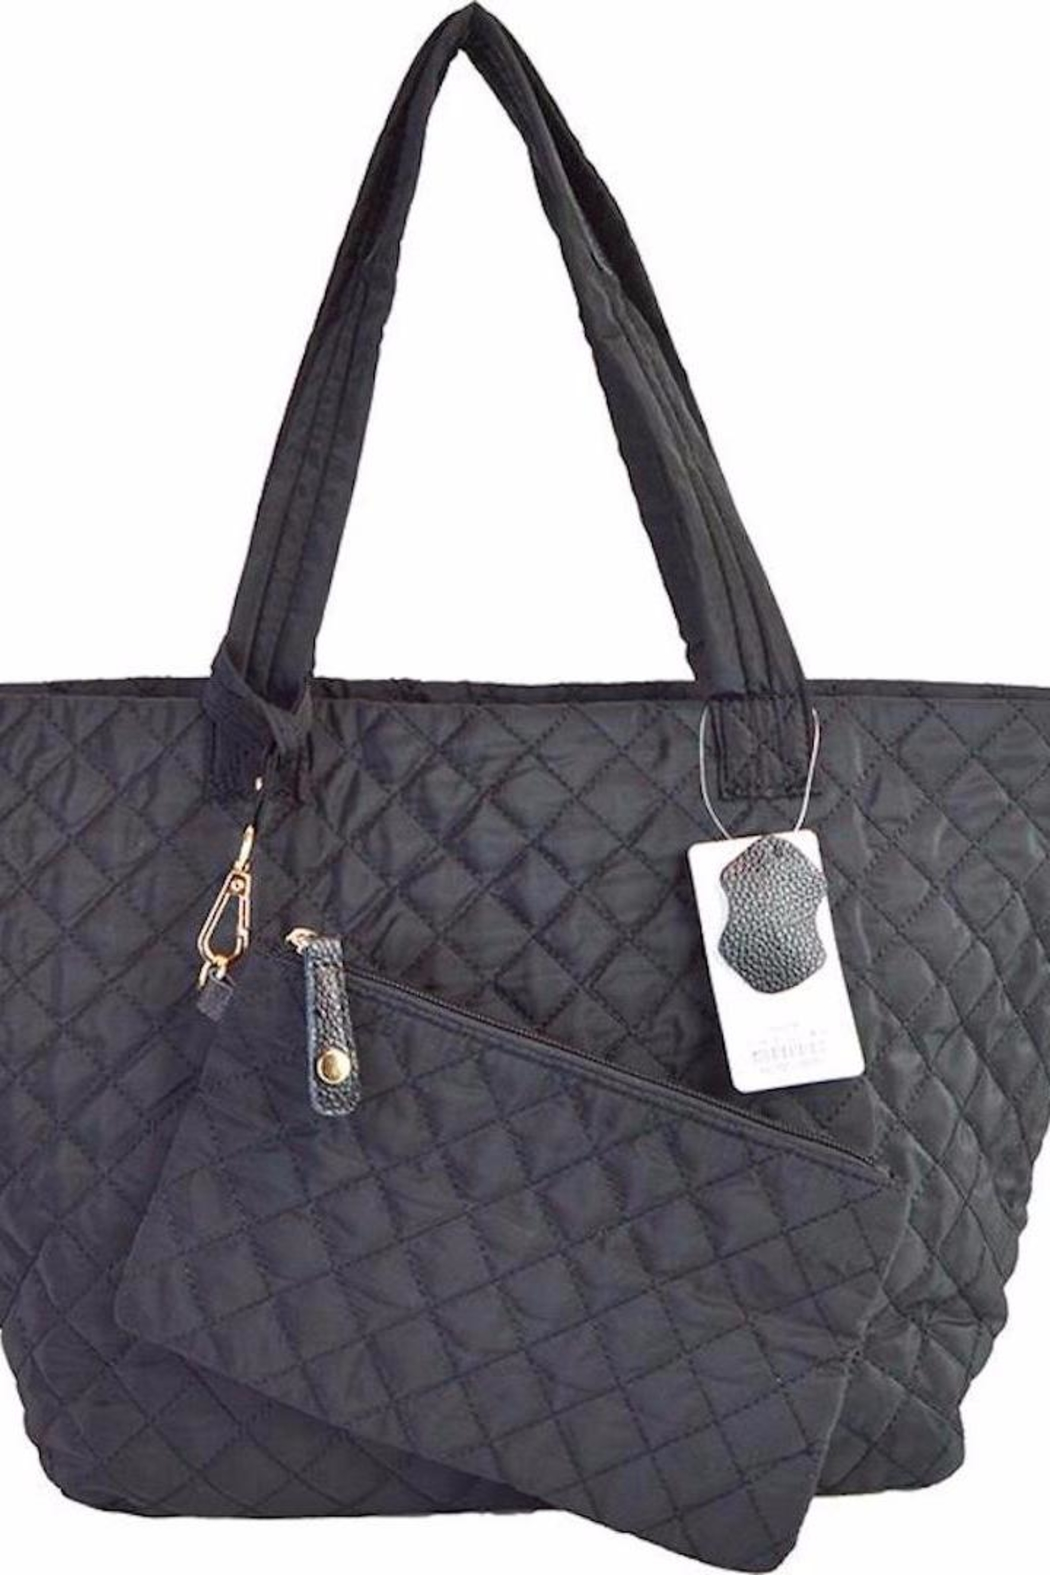 TIGERLILY Black Quilted Tote - Main Image